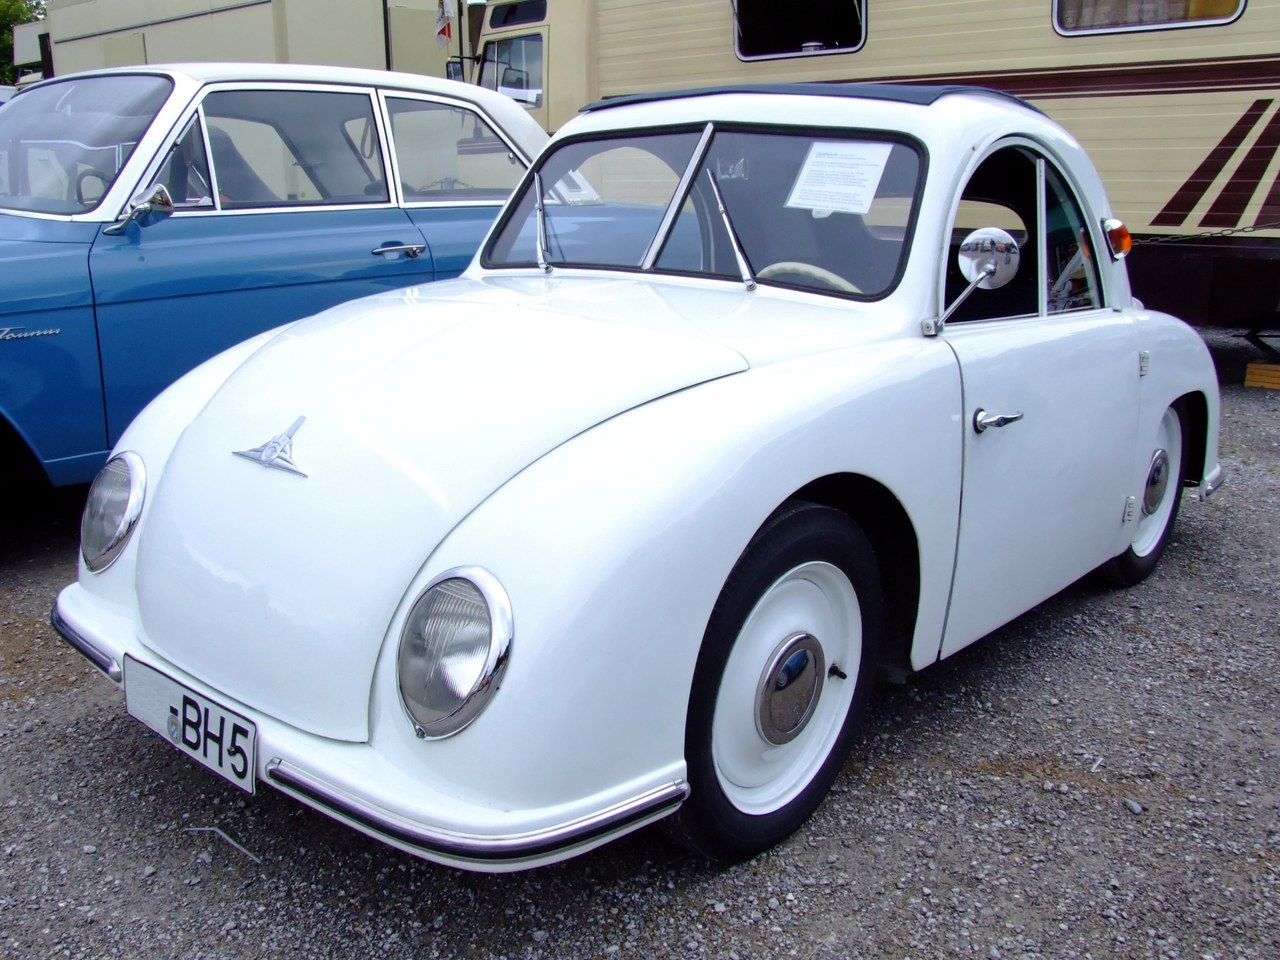 German Micro Car http://wn.com/List_of_microcars_by_country_of_origin